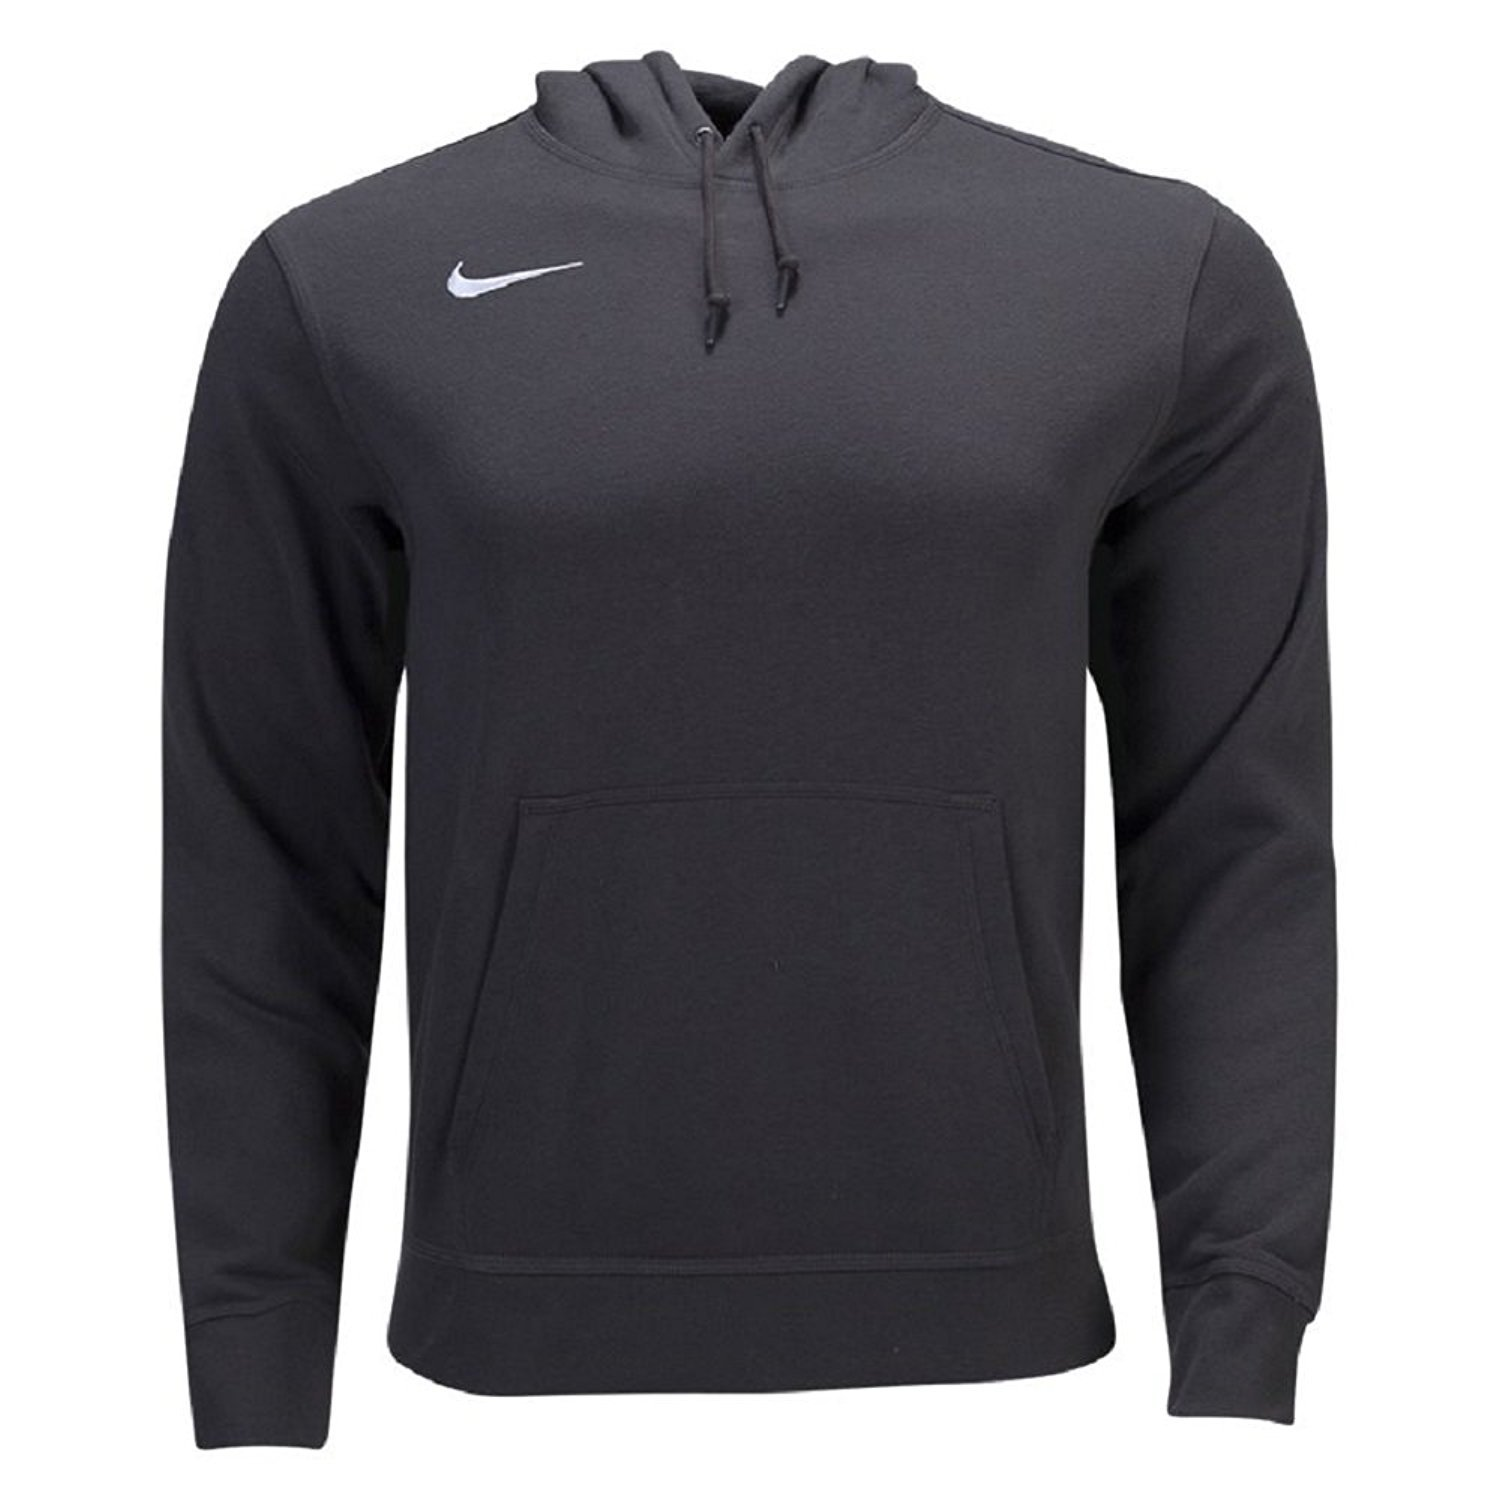 3d2f16b0047f Top 10 wholesale Nike Usa Hoodie - Chinabrands.com